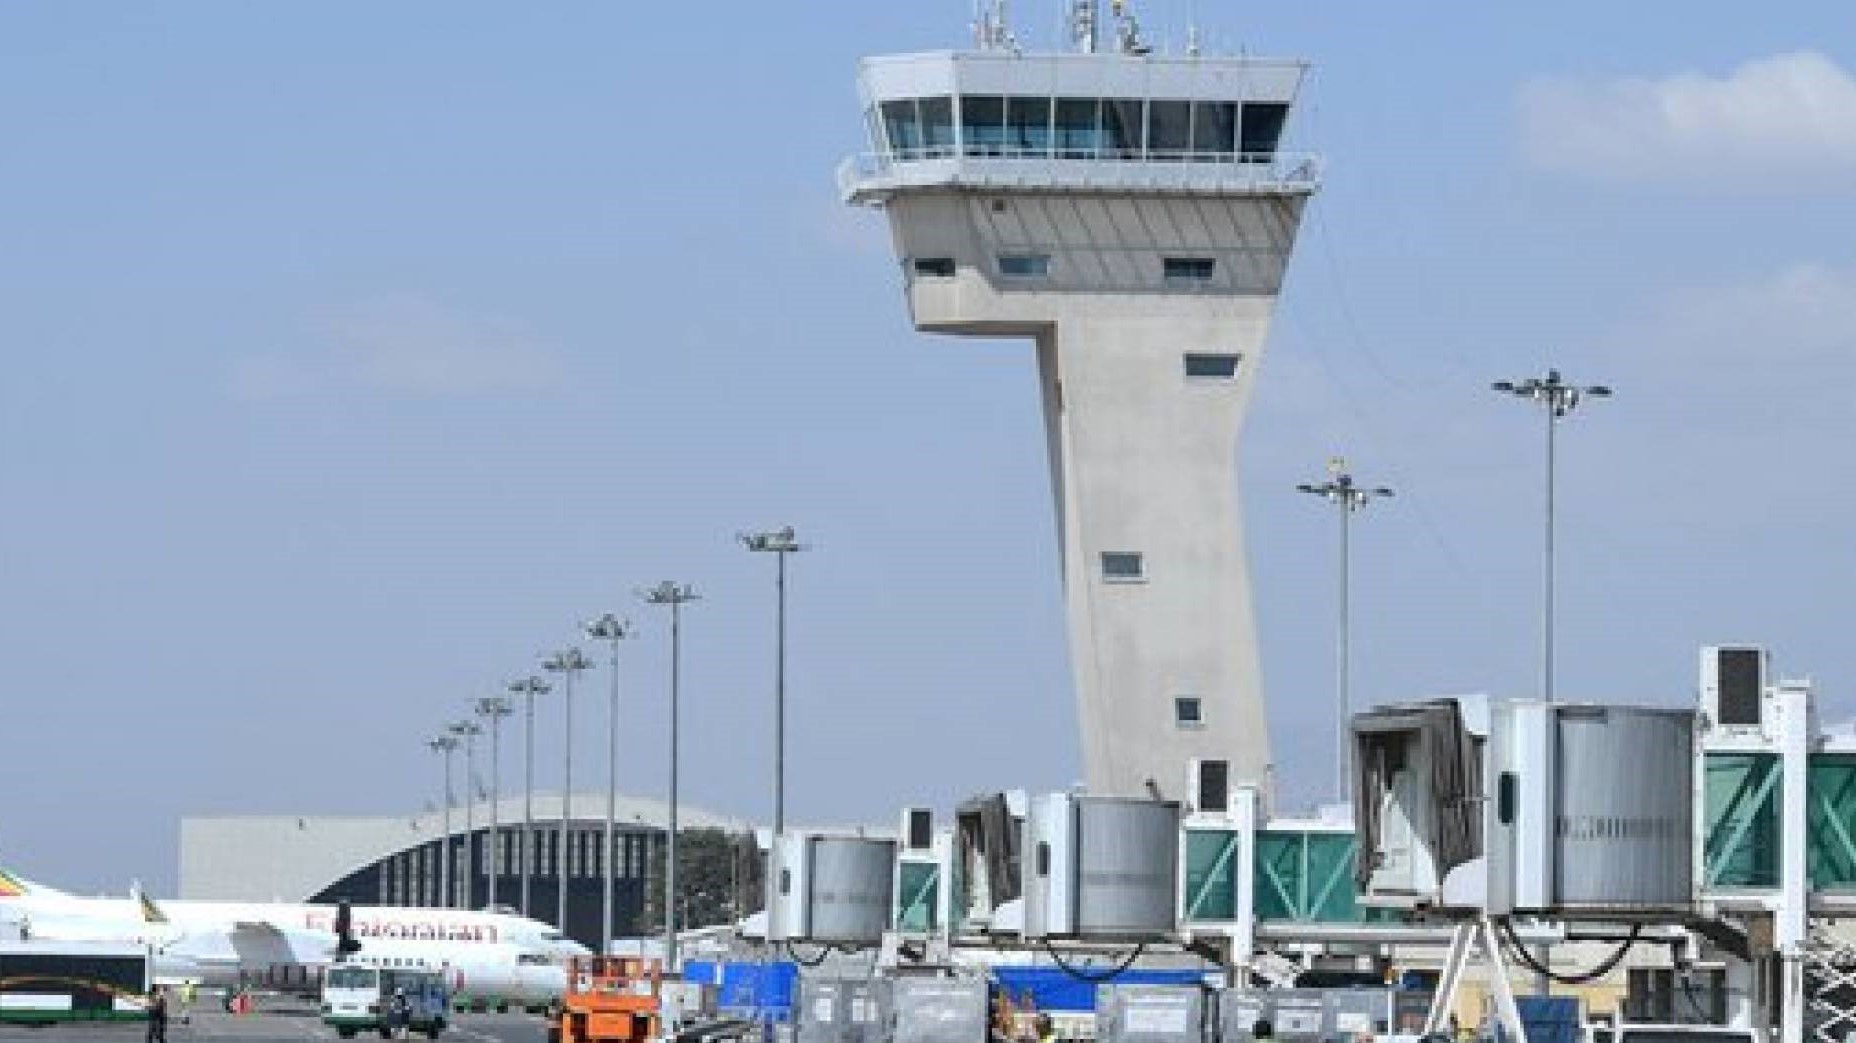 Worldwide airport congestion continues to increase in 2019 pushing airlines to reconsider locations 1